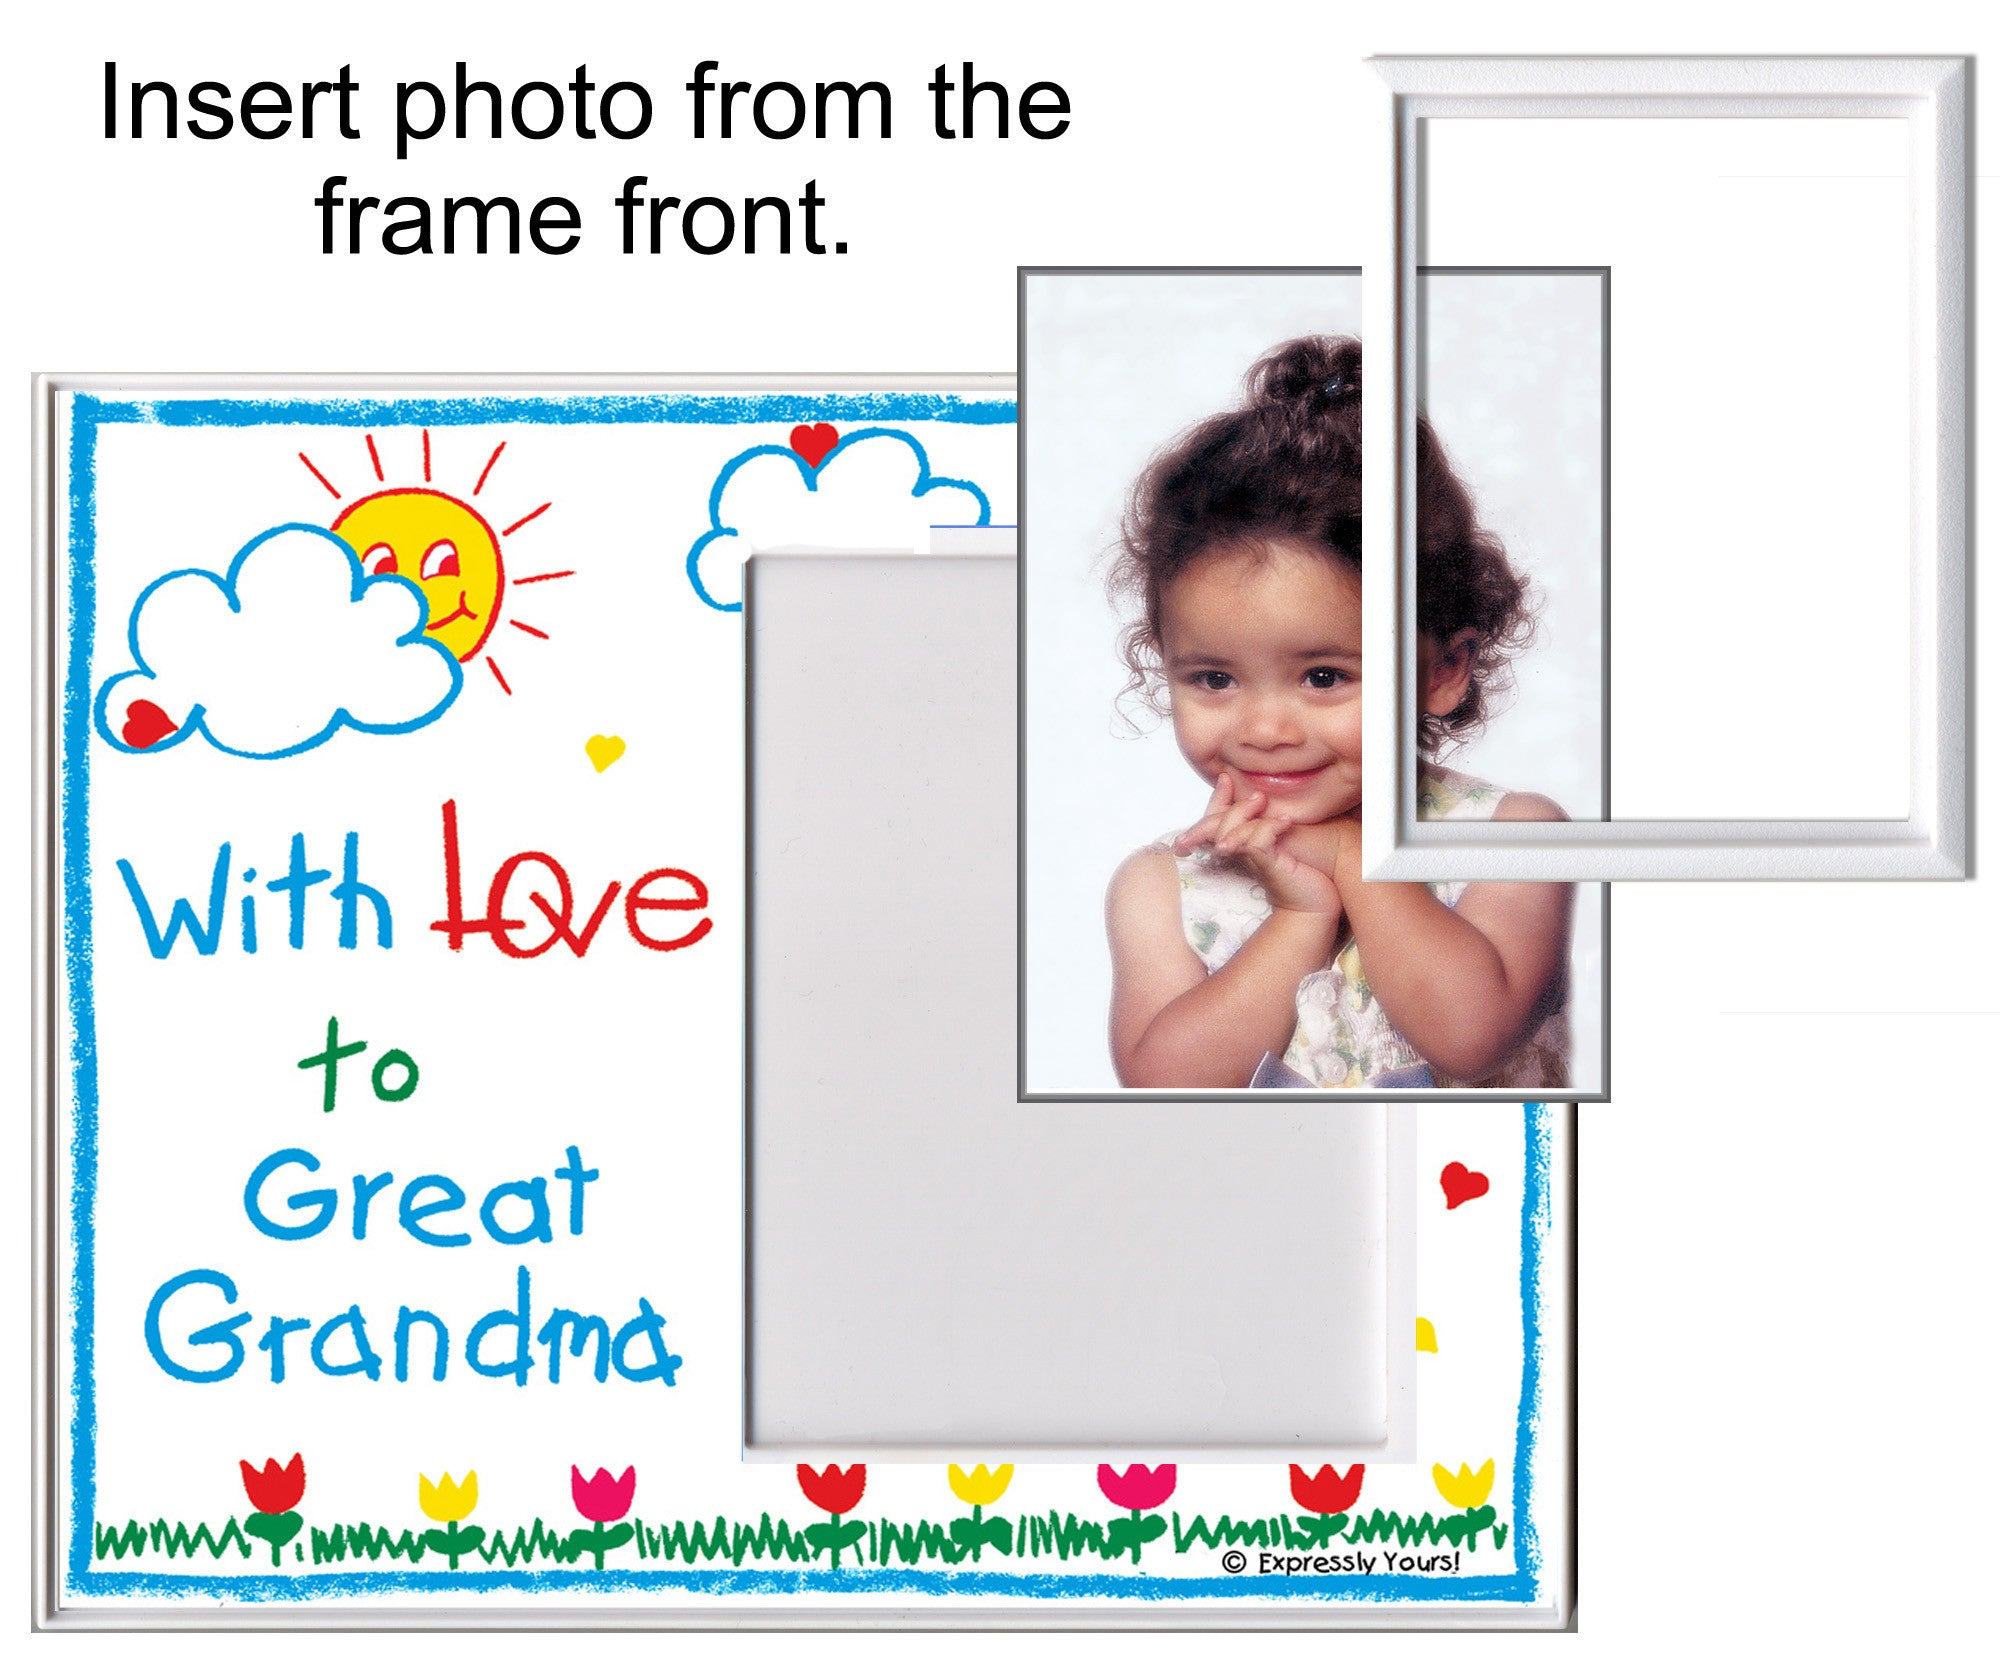 holiday hugs for great grandma great grandpa christmas picture frame gift